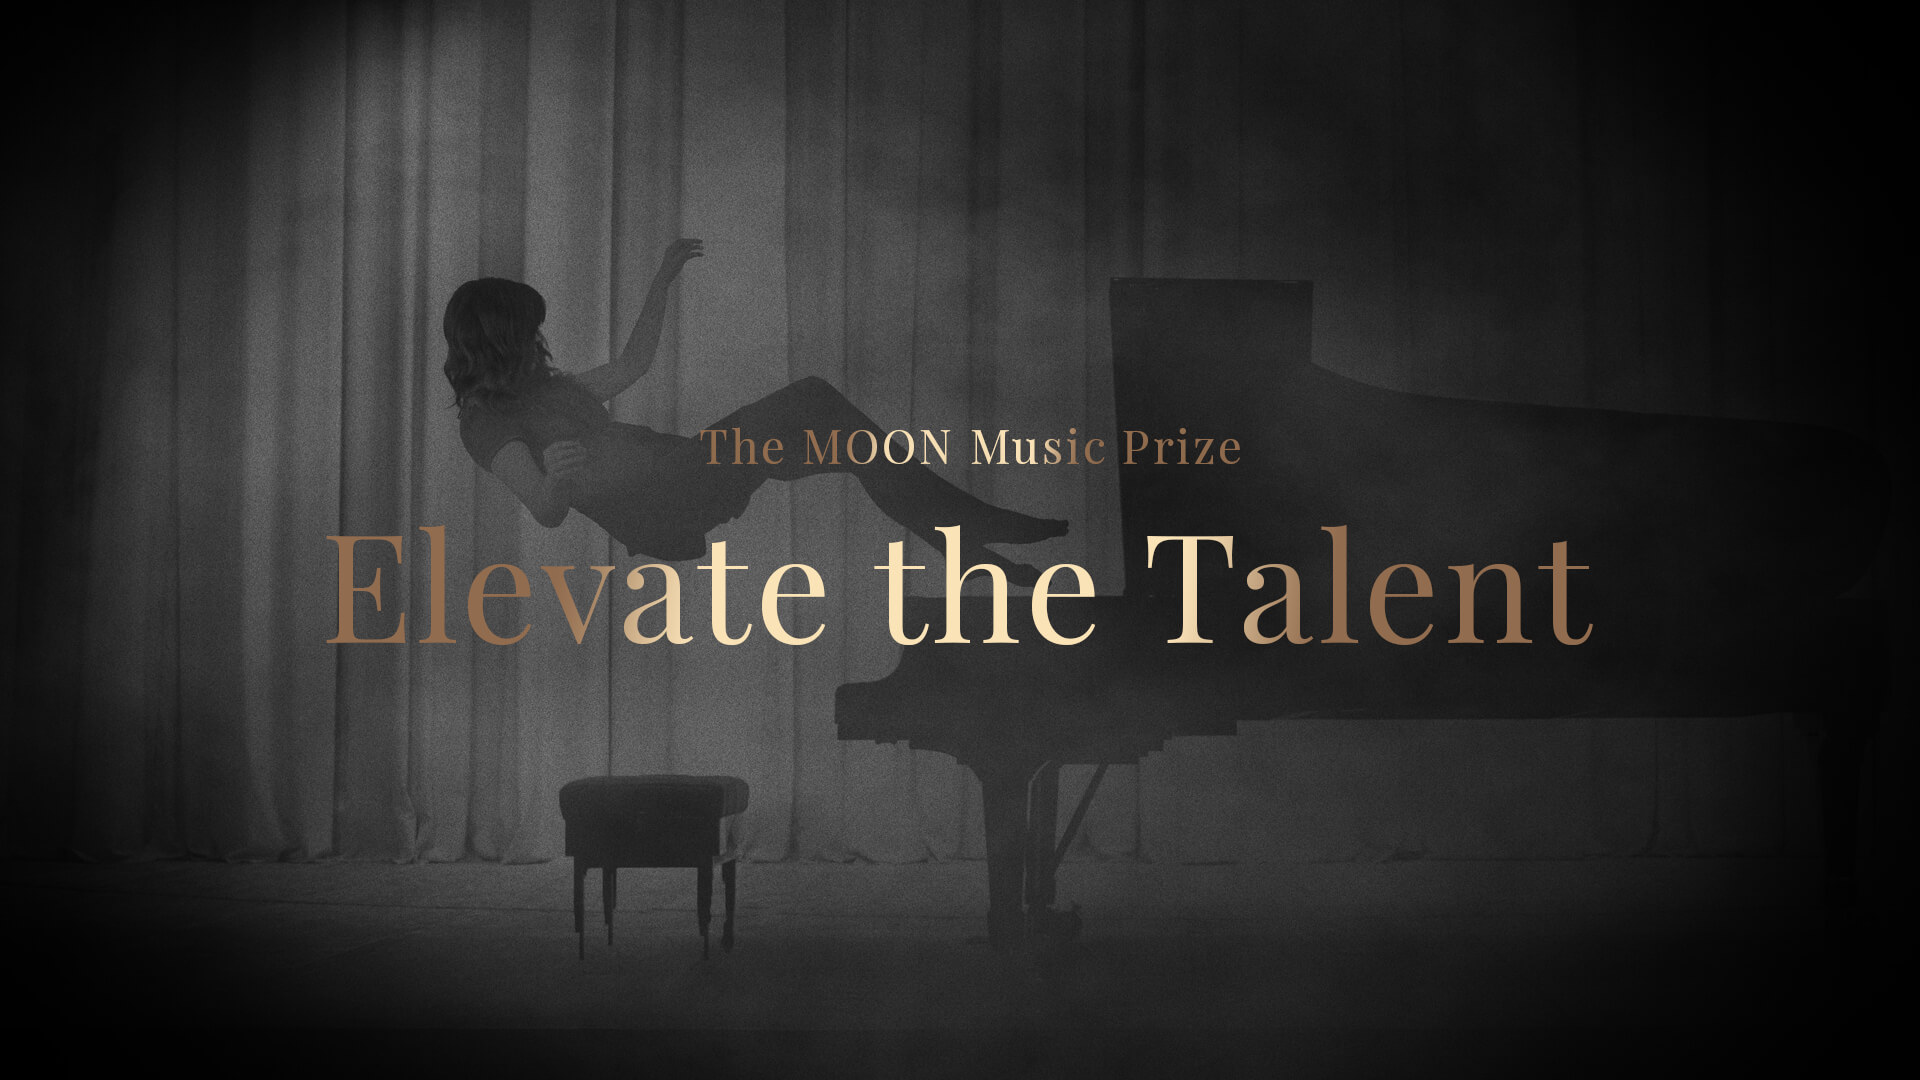 the moon music prize elevate the talent